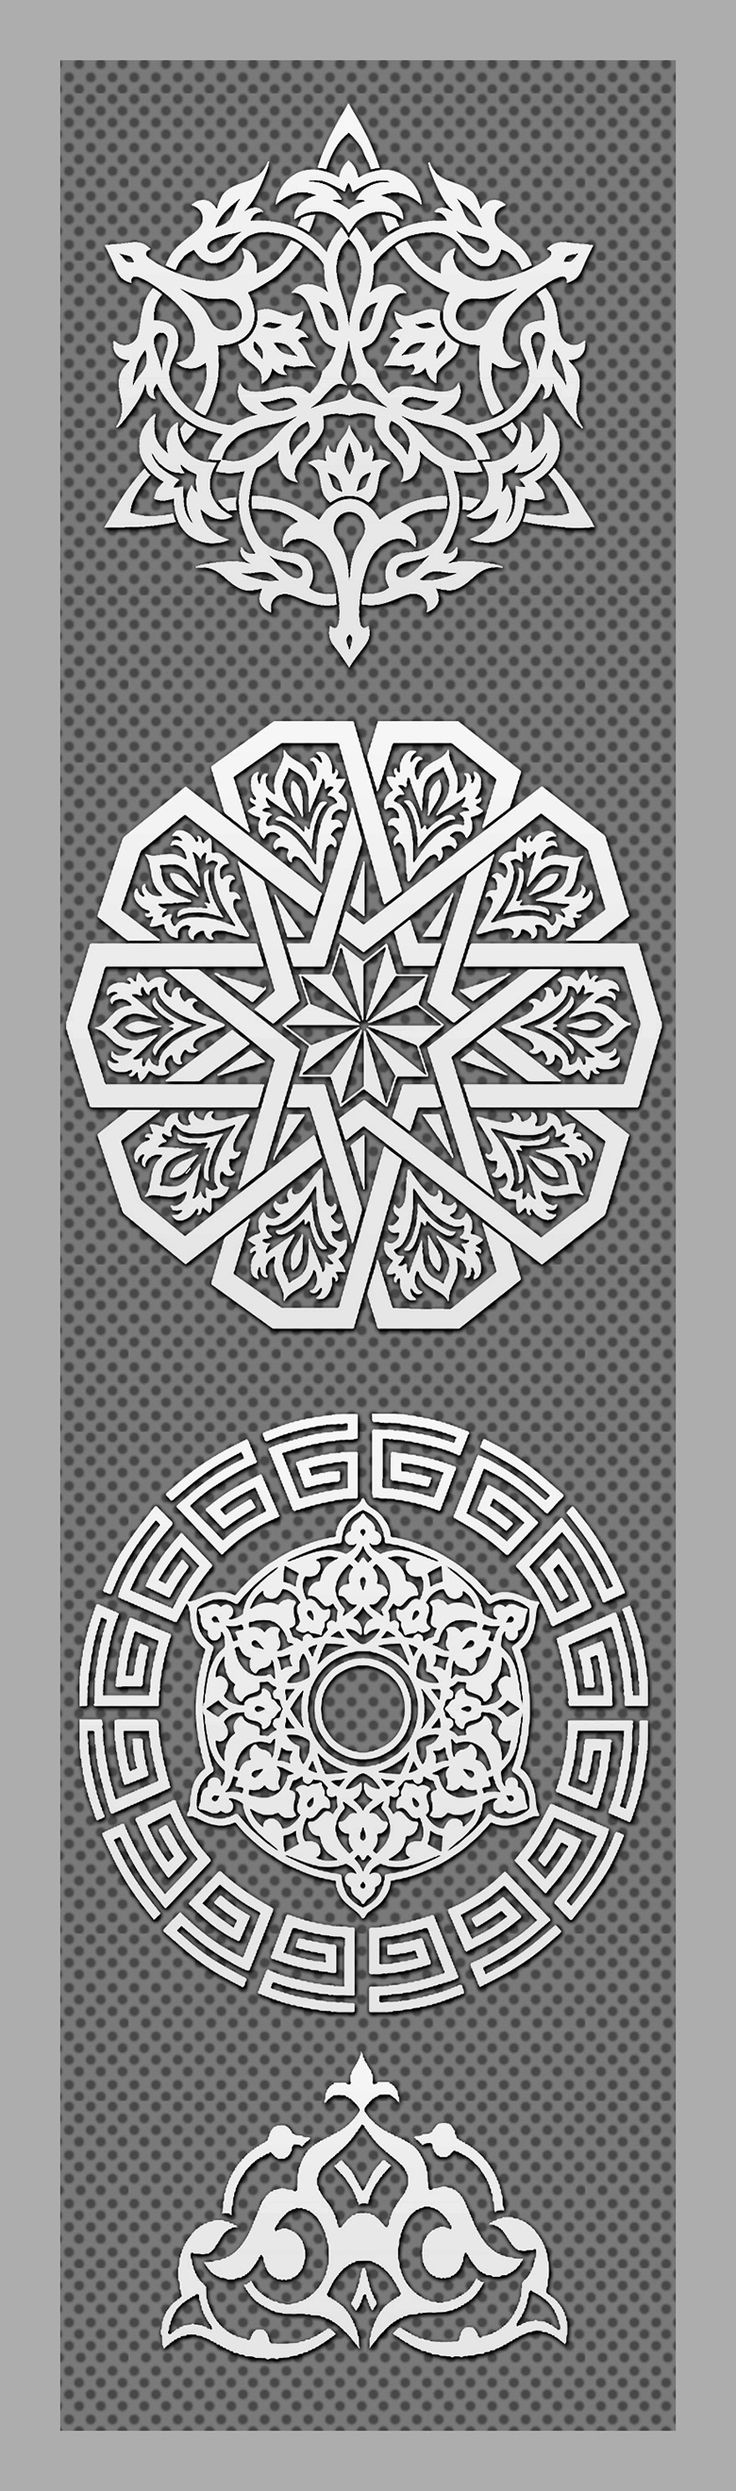 1st design snowflake-like